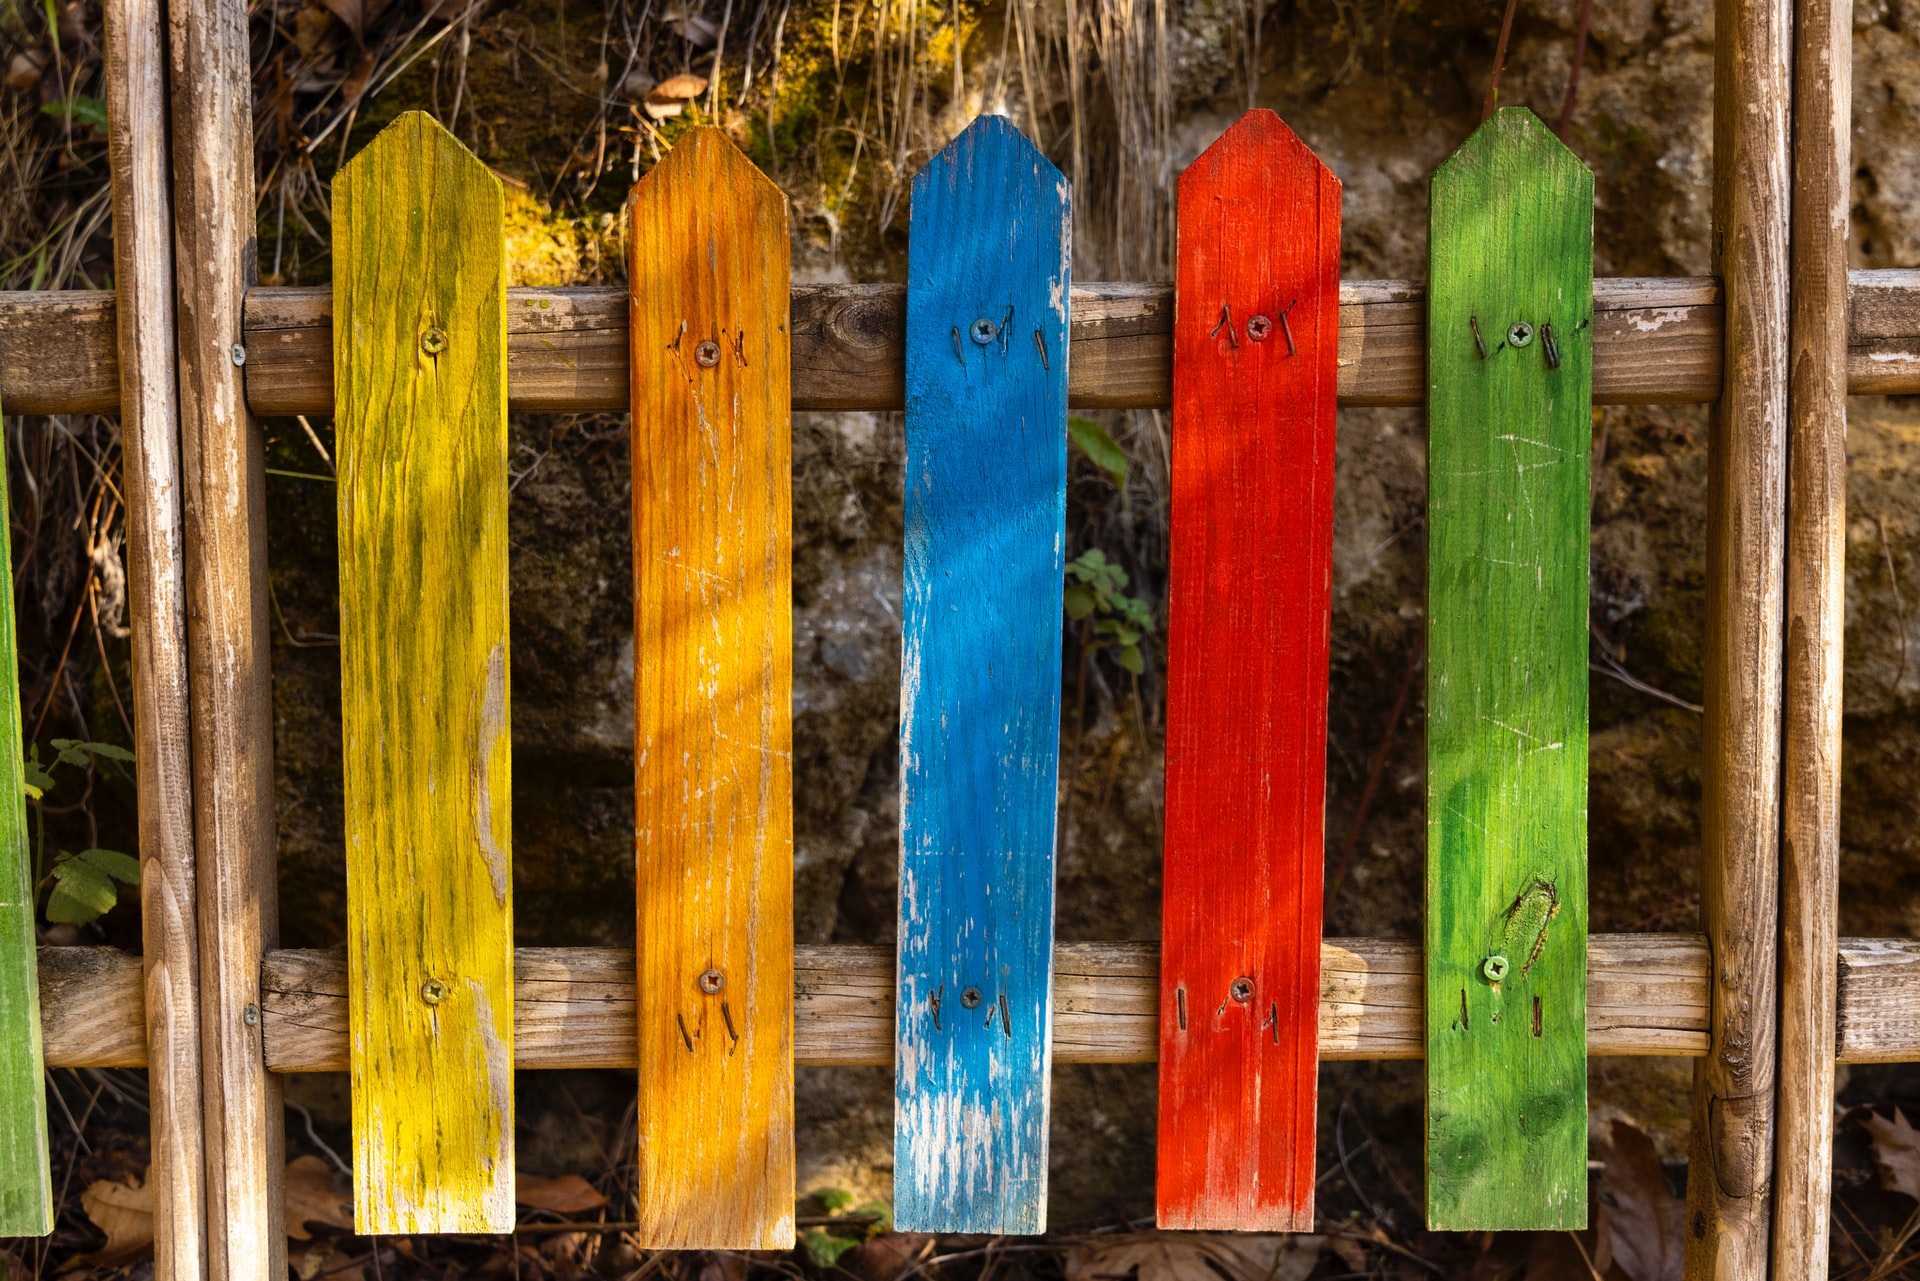 An image of a rainbow picket fence